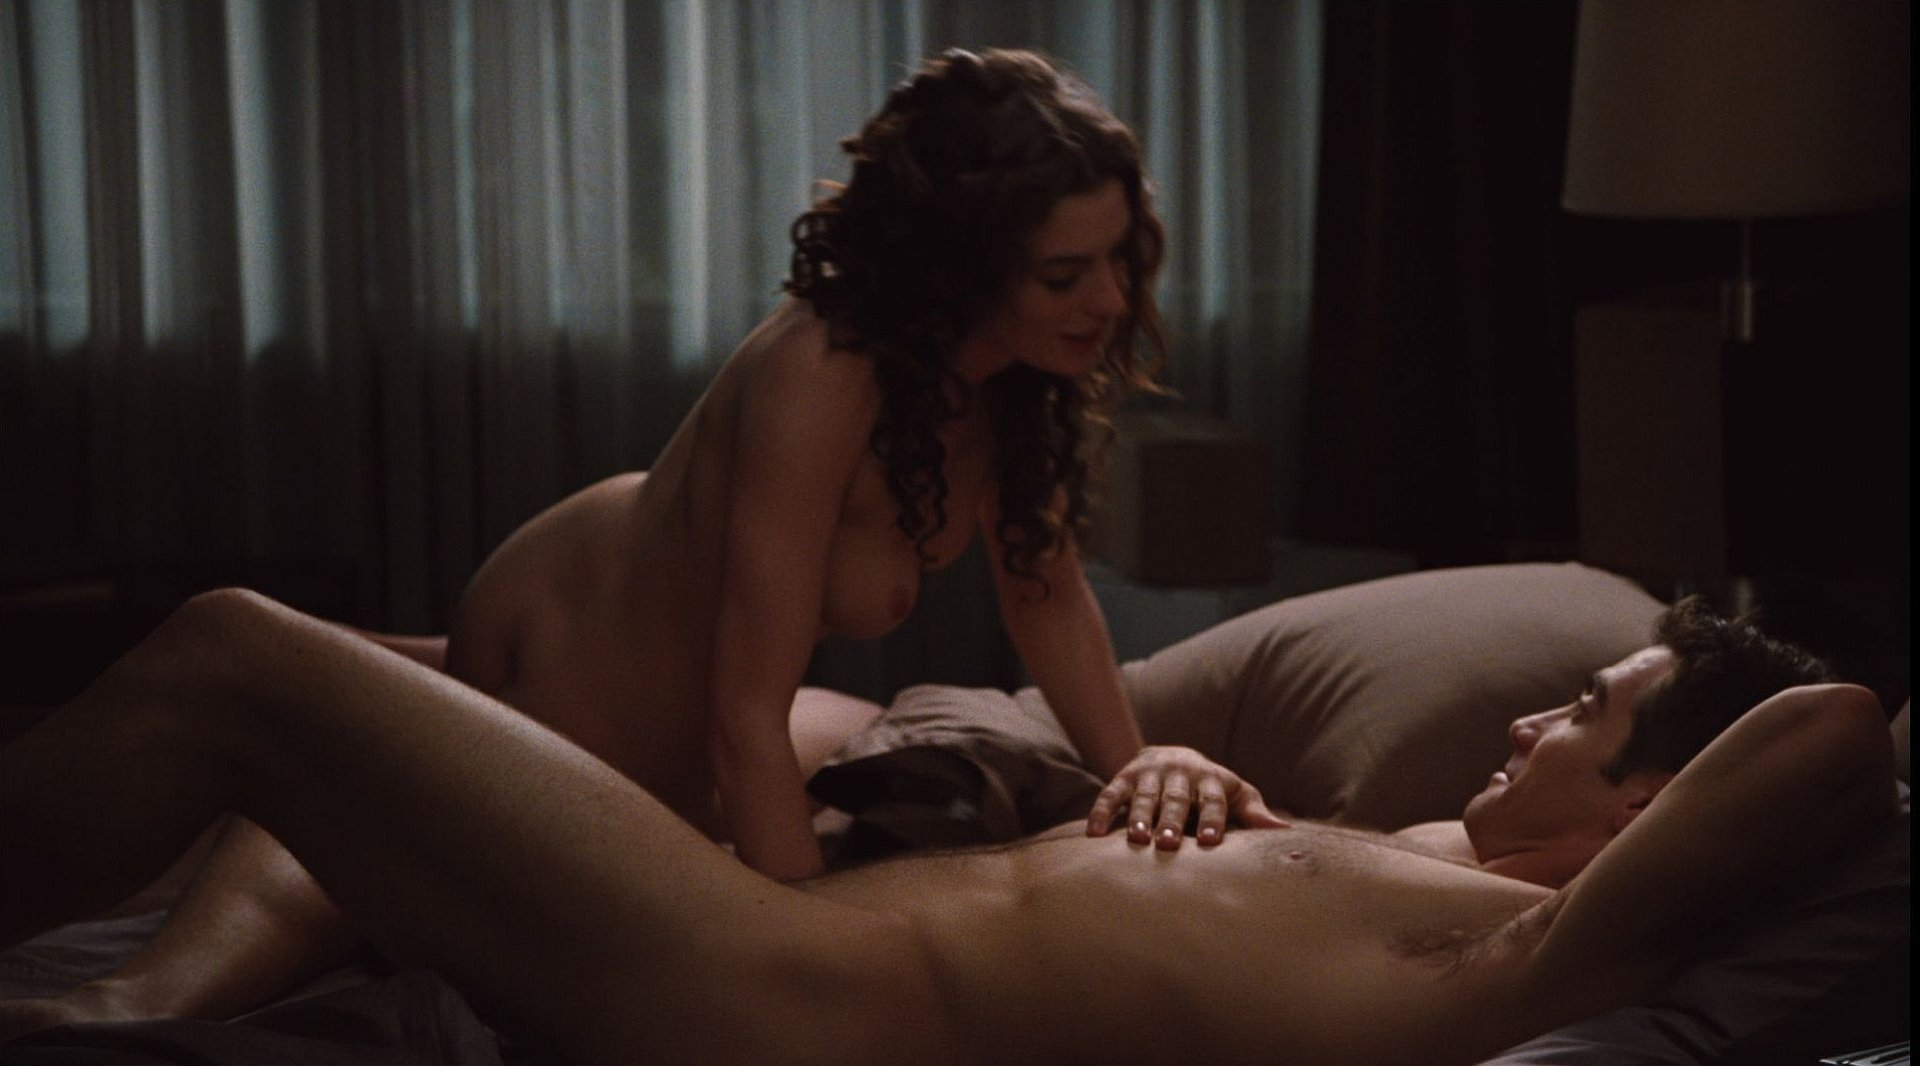 Anne Hathaway Porno anne hathaway nude and sexy scenes (6 video and 39 photos